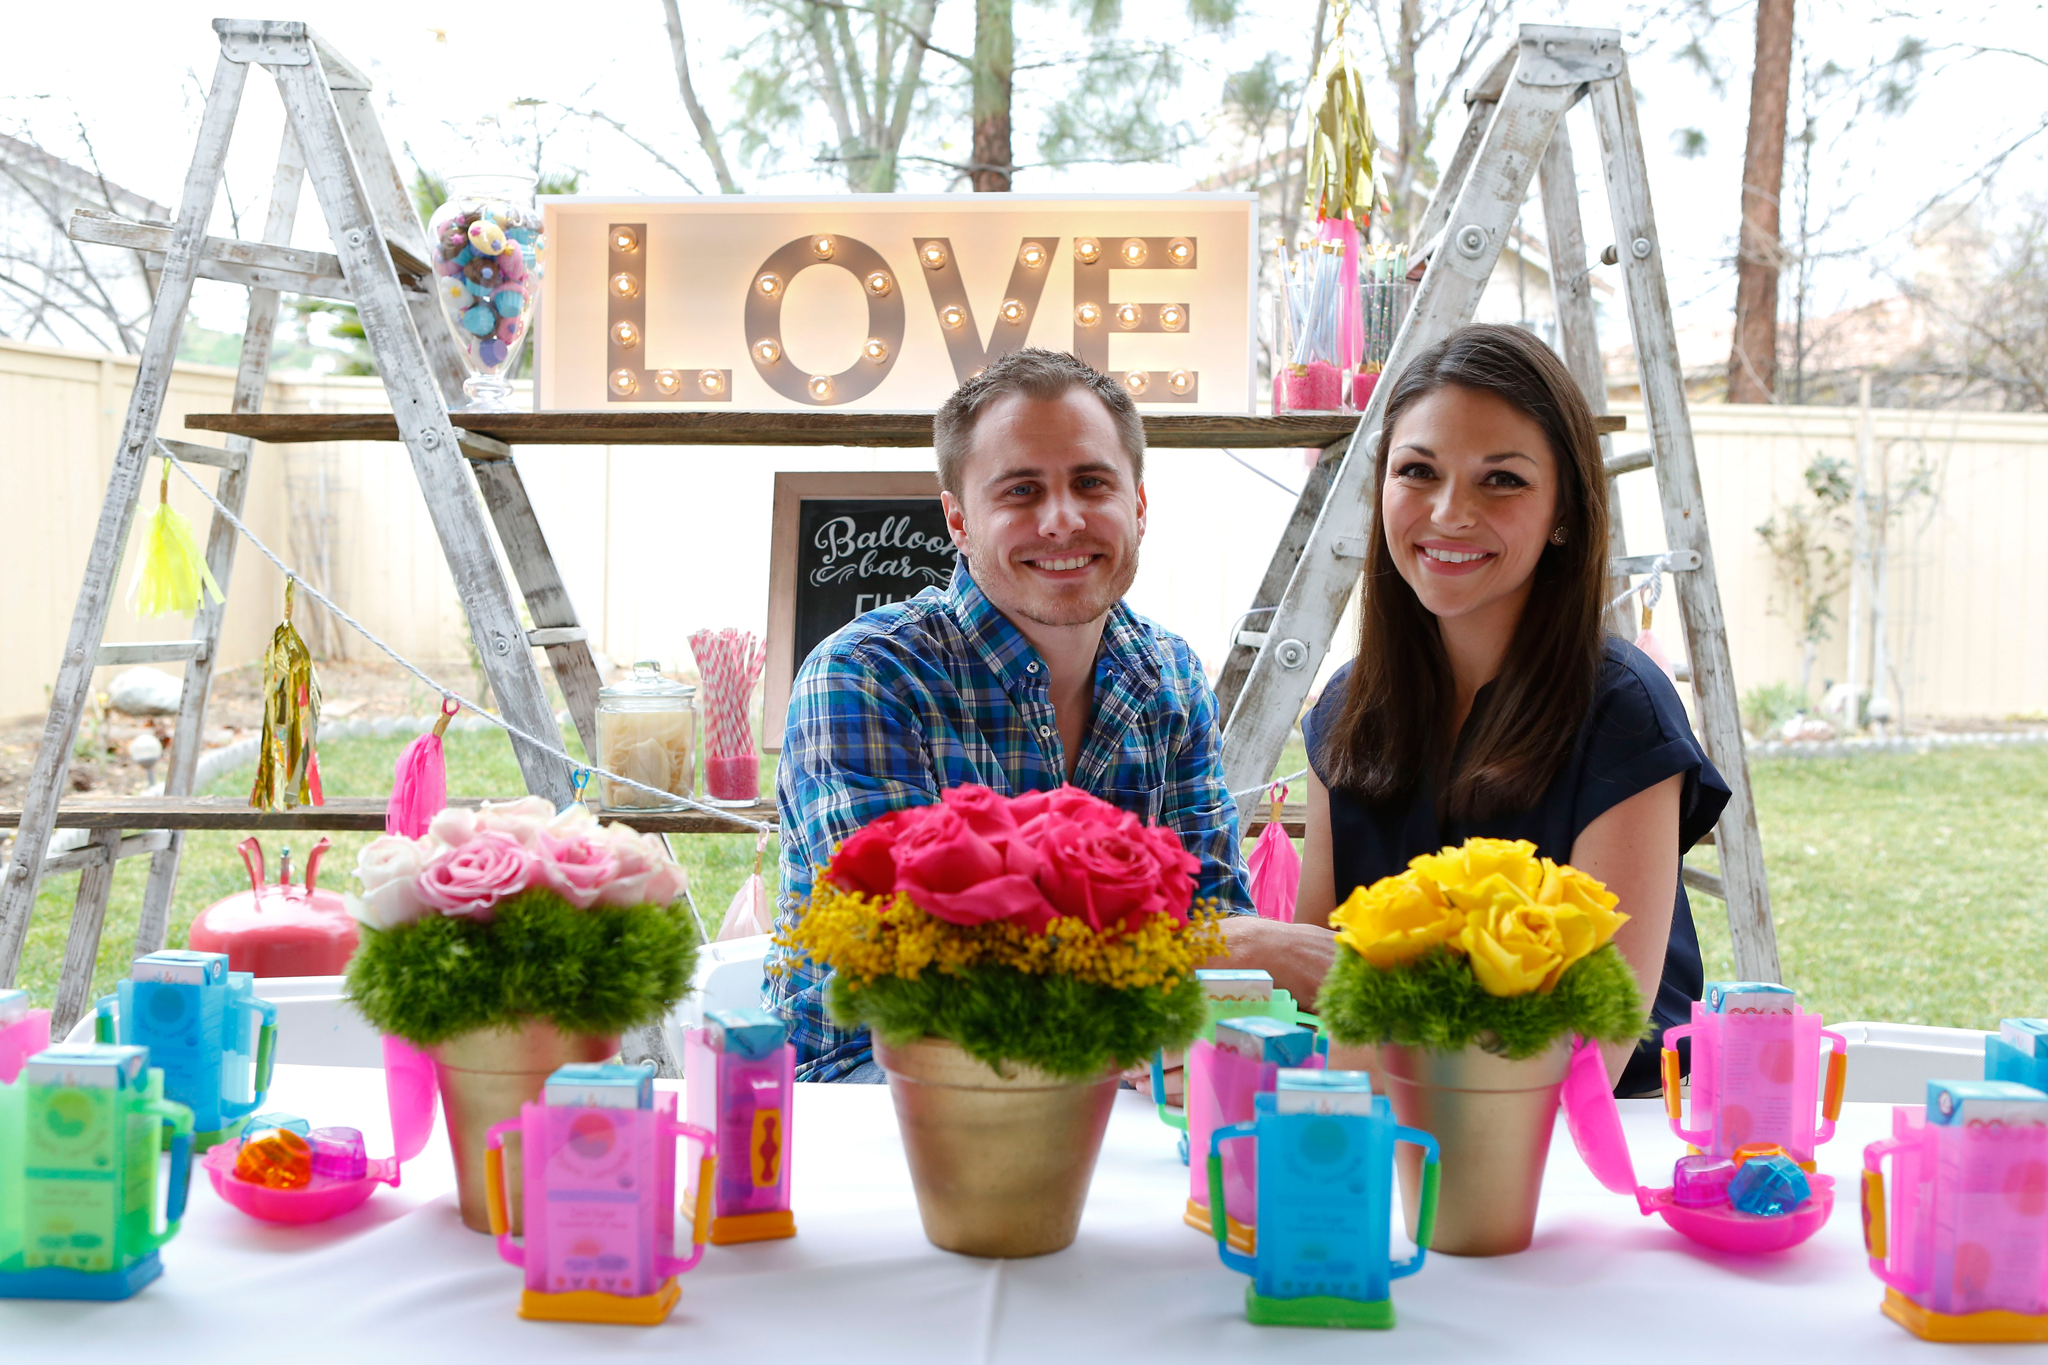 DeAnna Pappas Stagliano and Stephen Stagliano at Baby's First Birthday Party